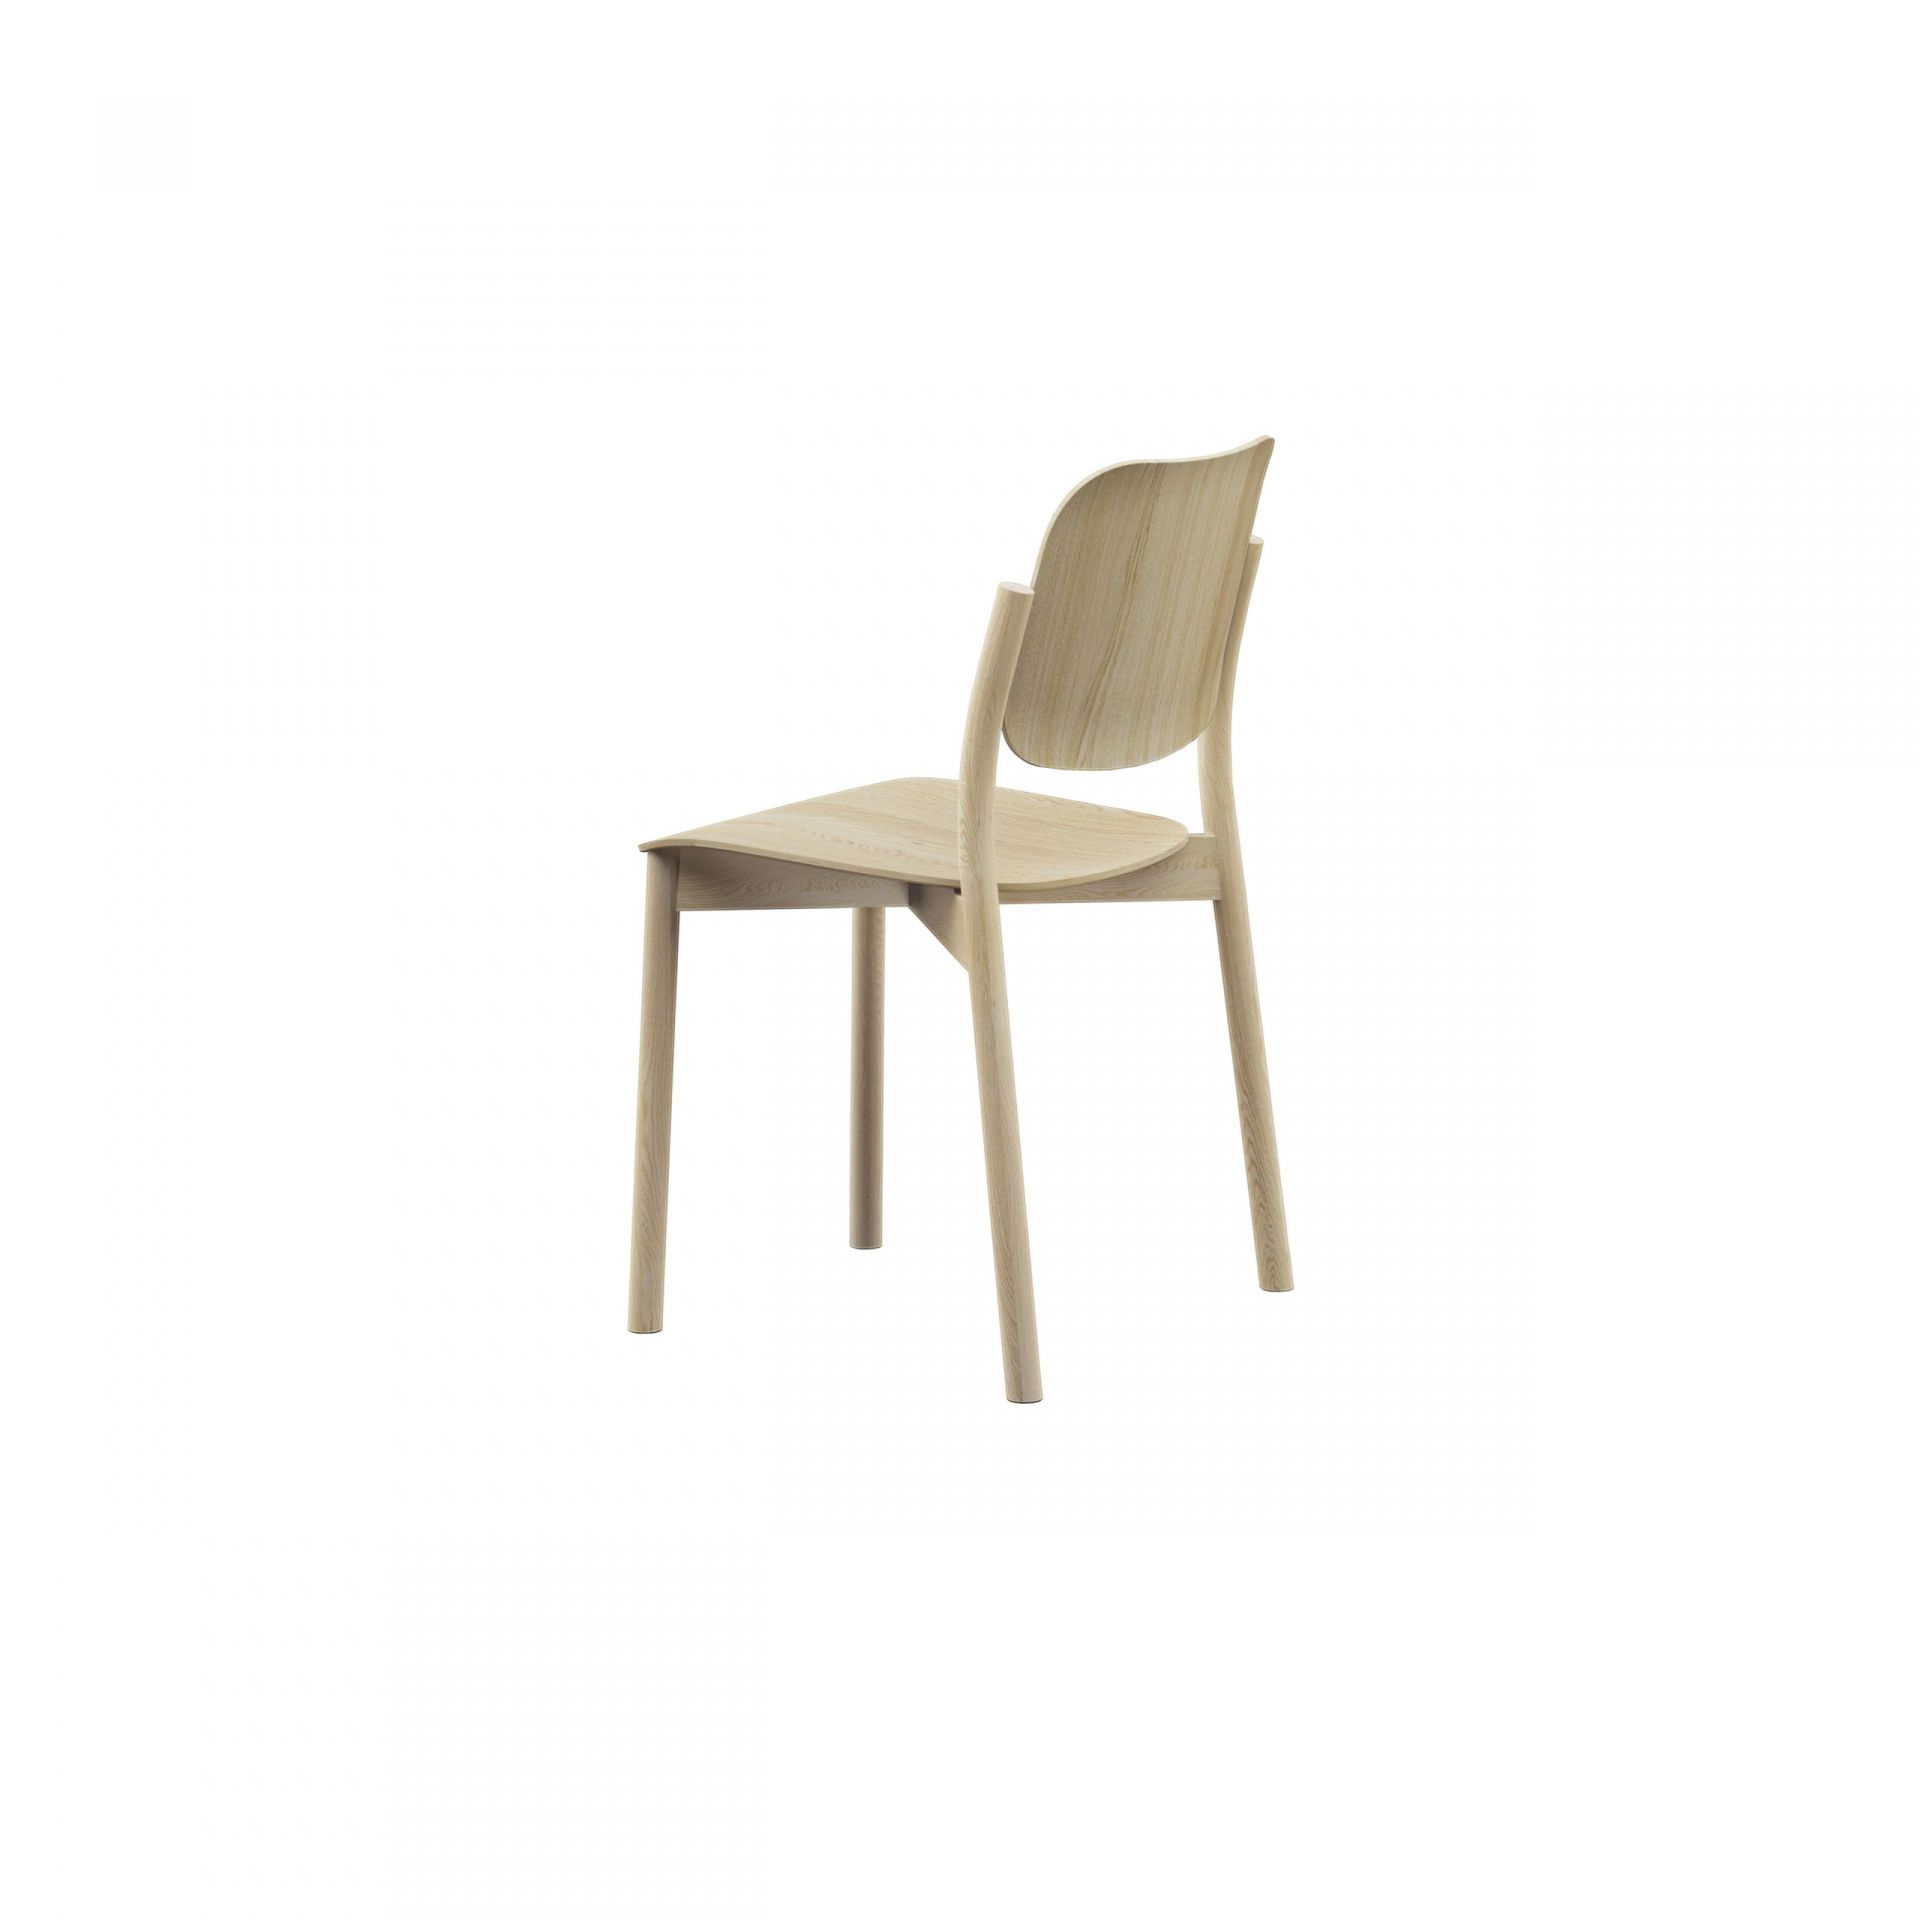 Zoe Wooden chair product image 11